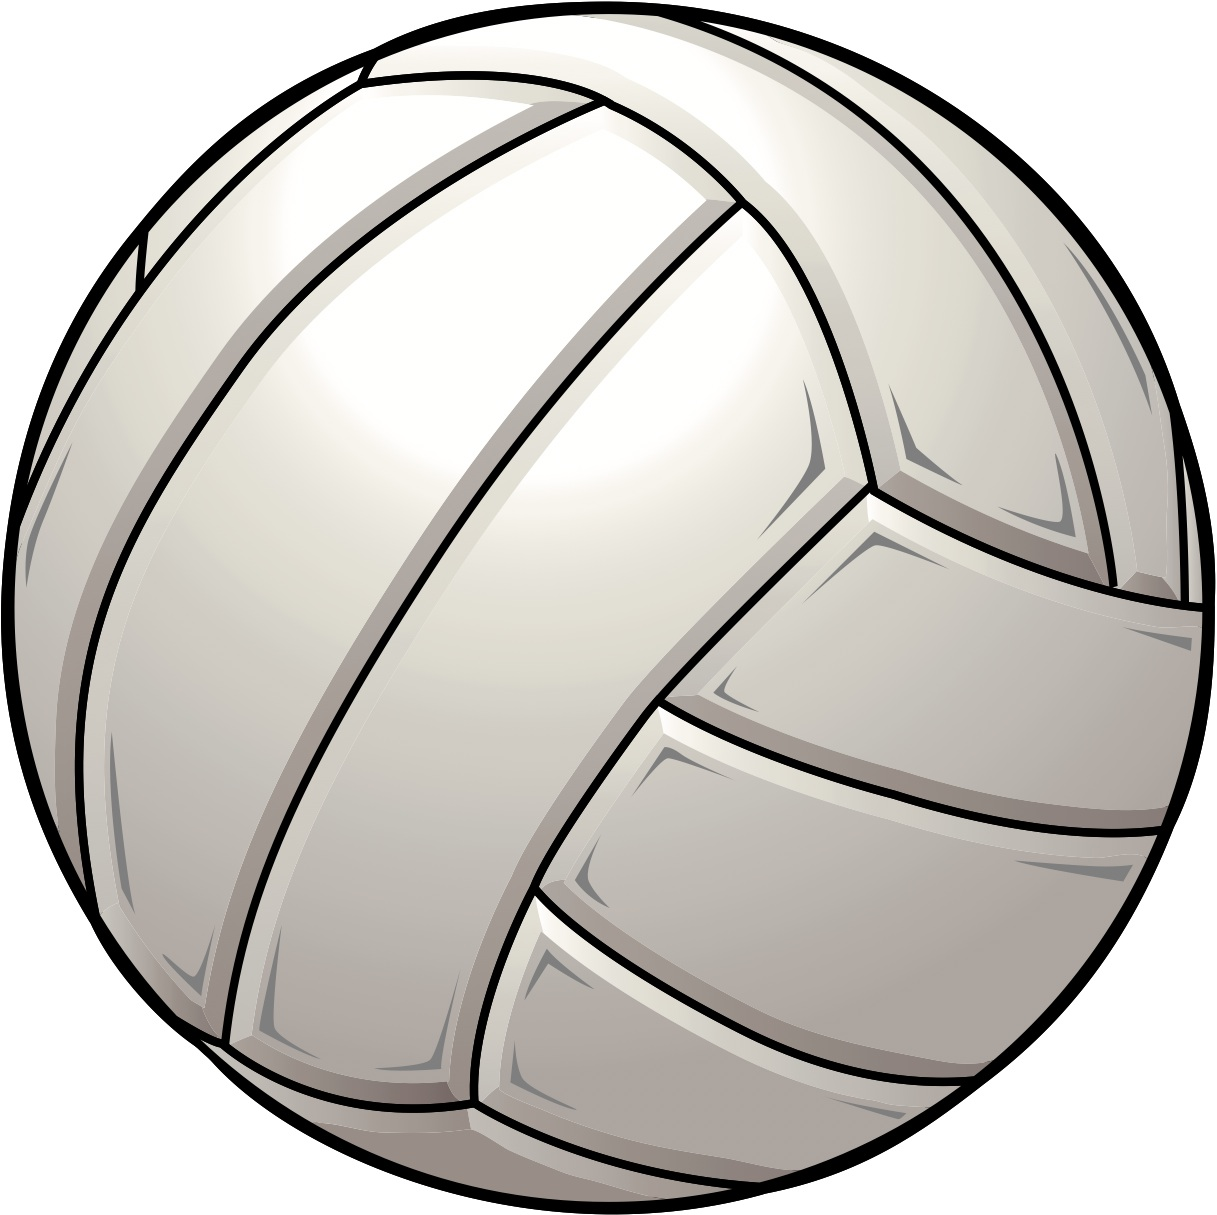 1217x1215 Best Volleyball Clipart